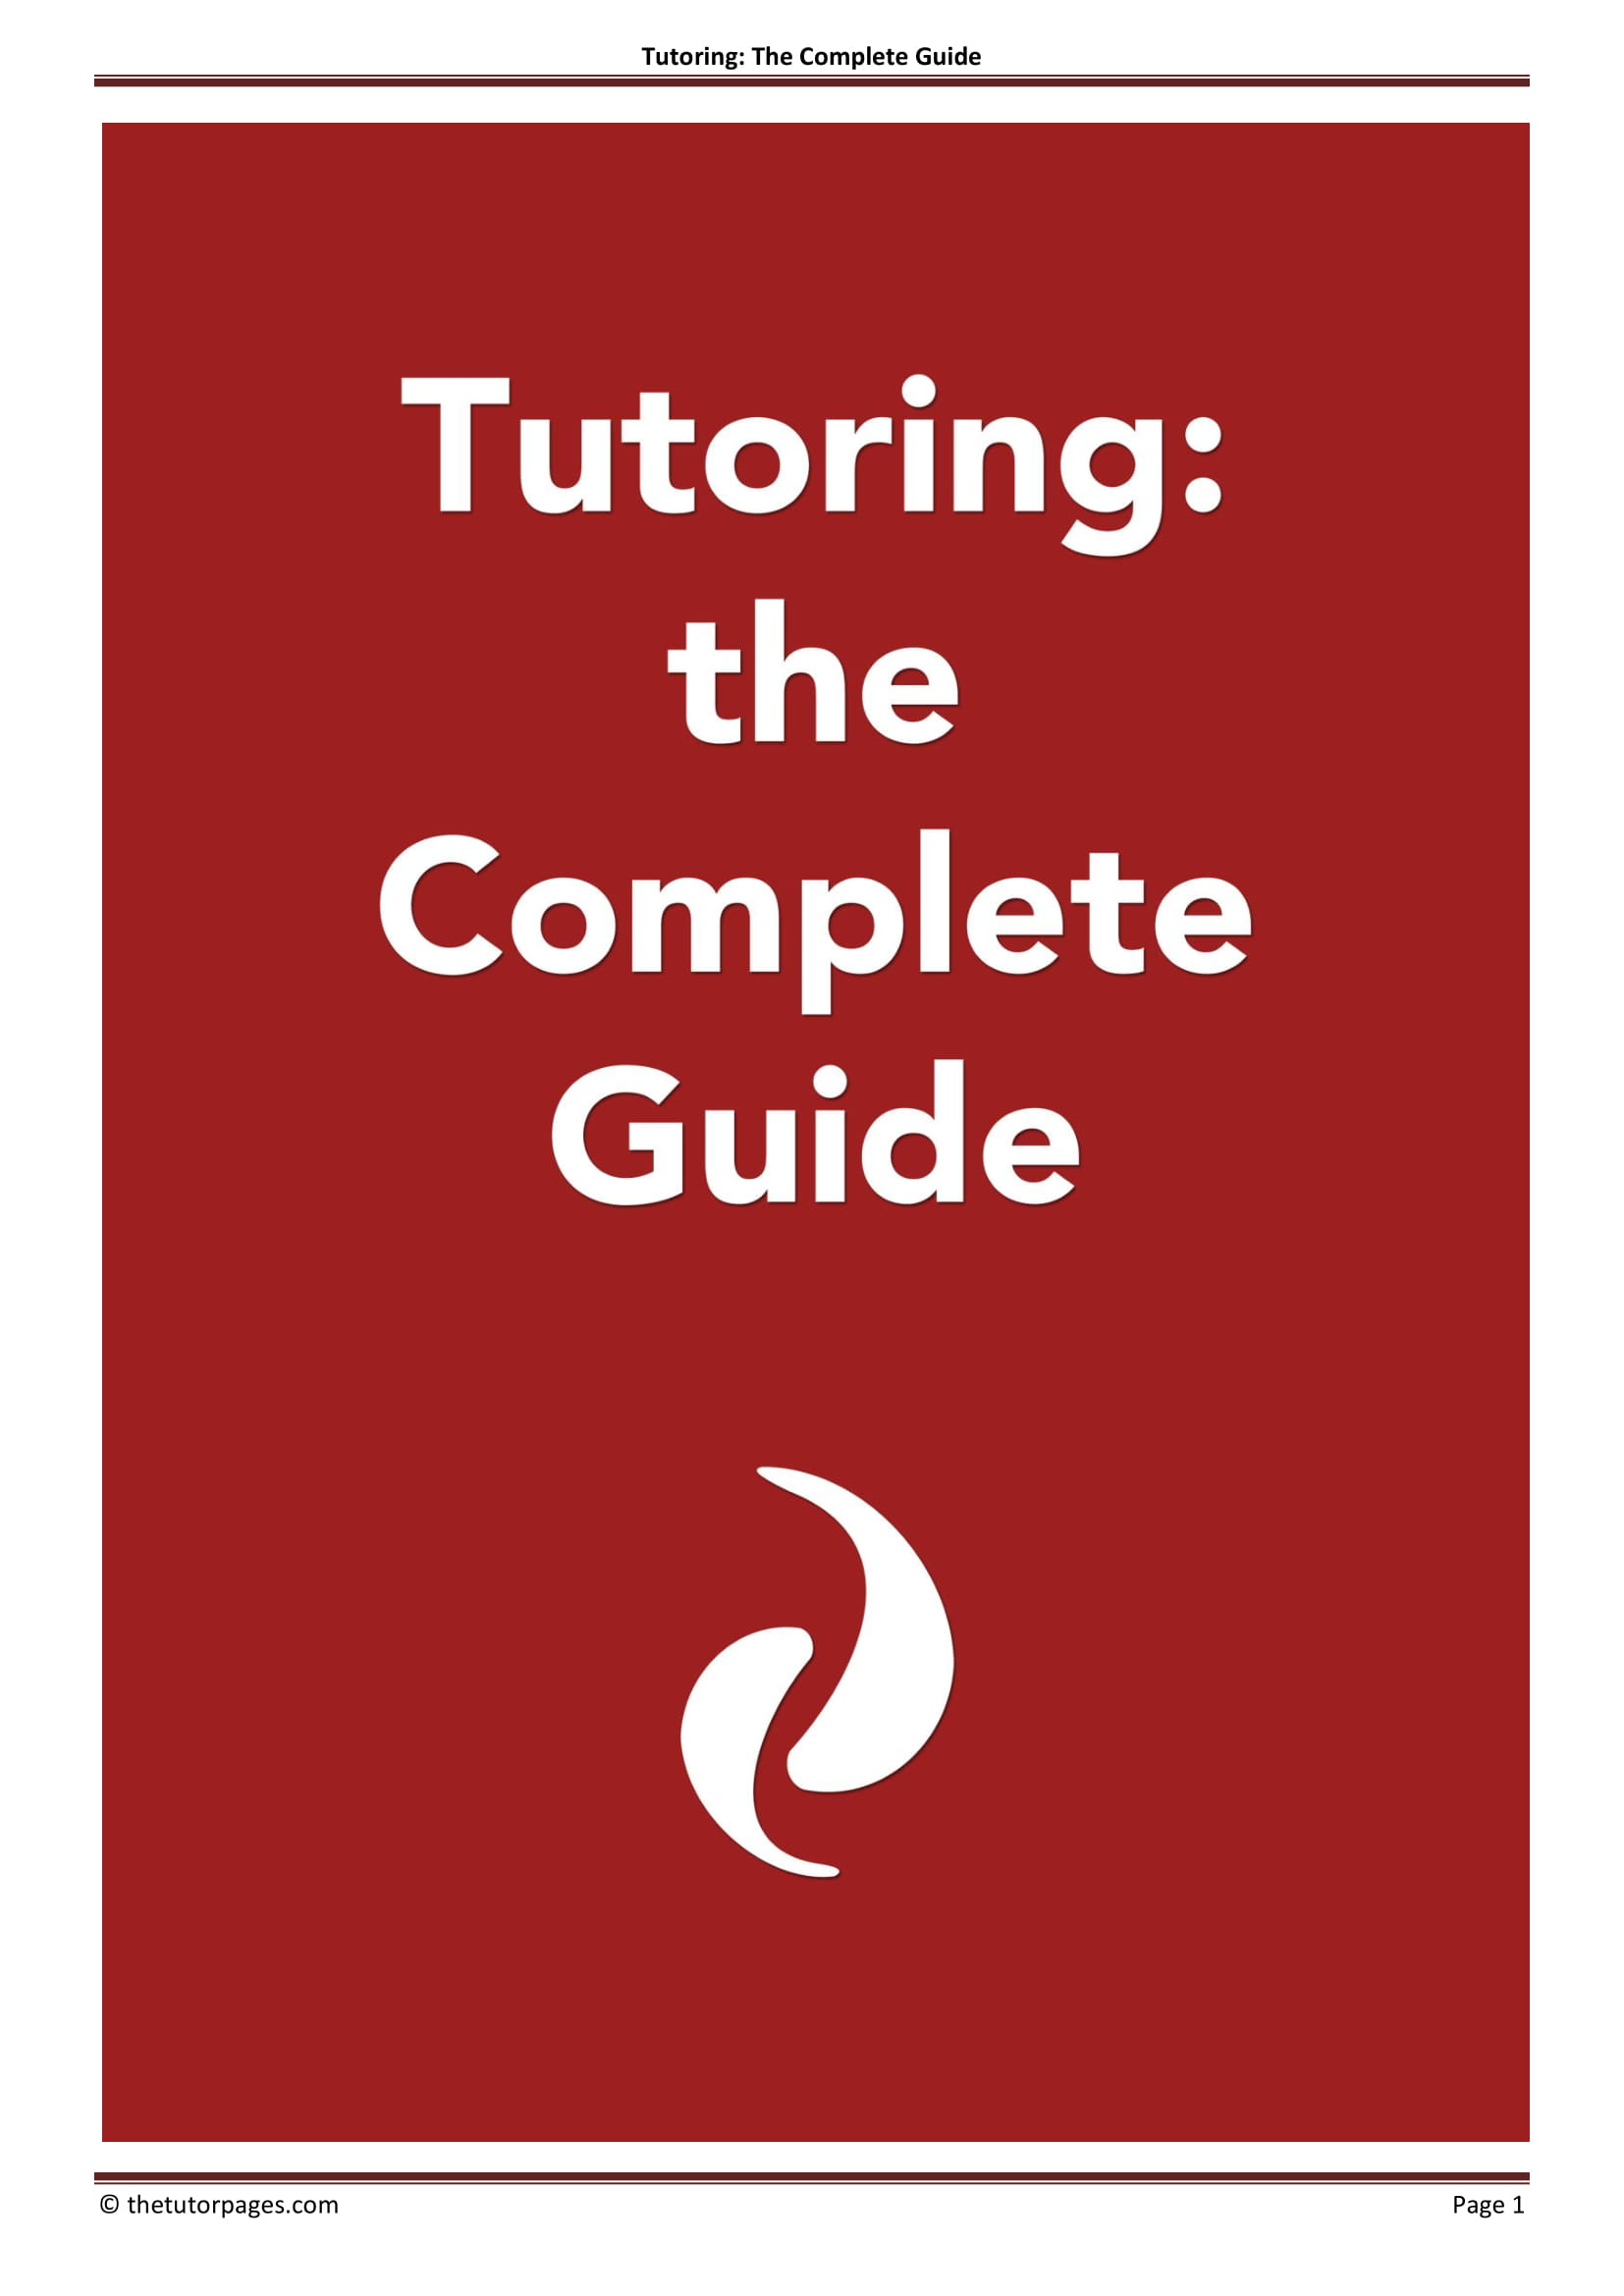 6 tutoring business plan examples pdf tutoring the complete guide wajeb Image collections